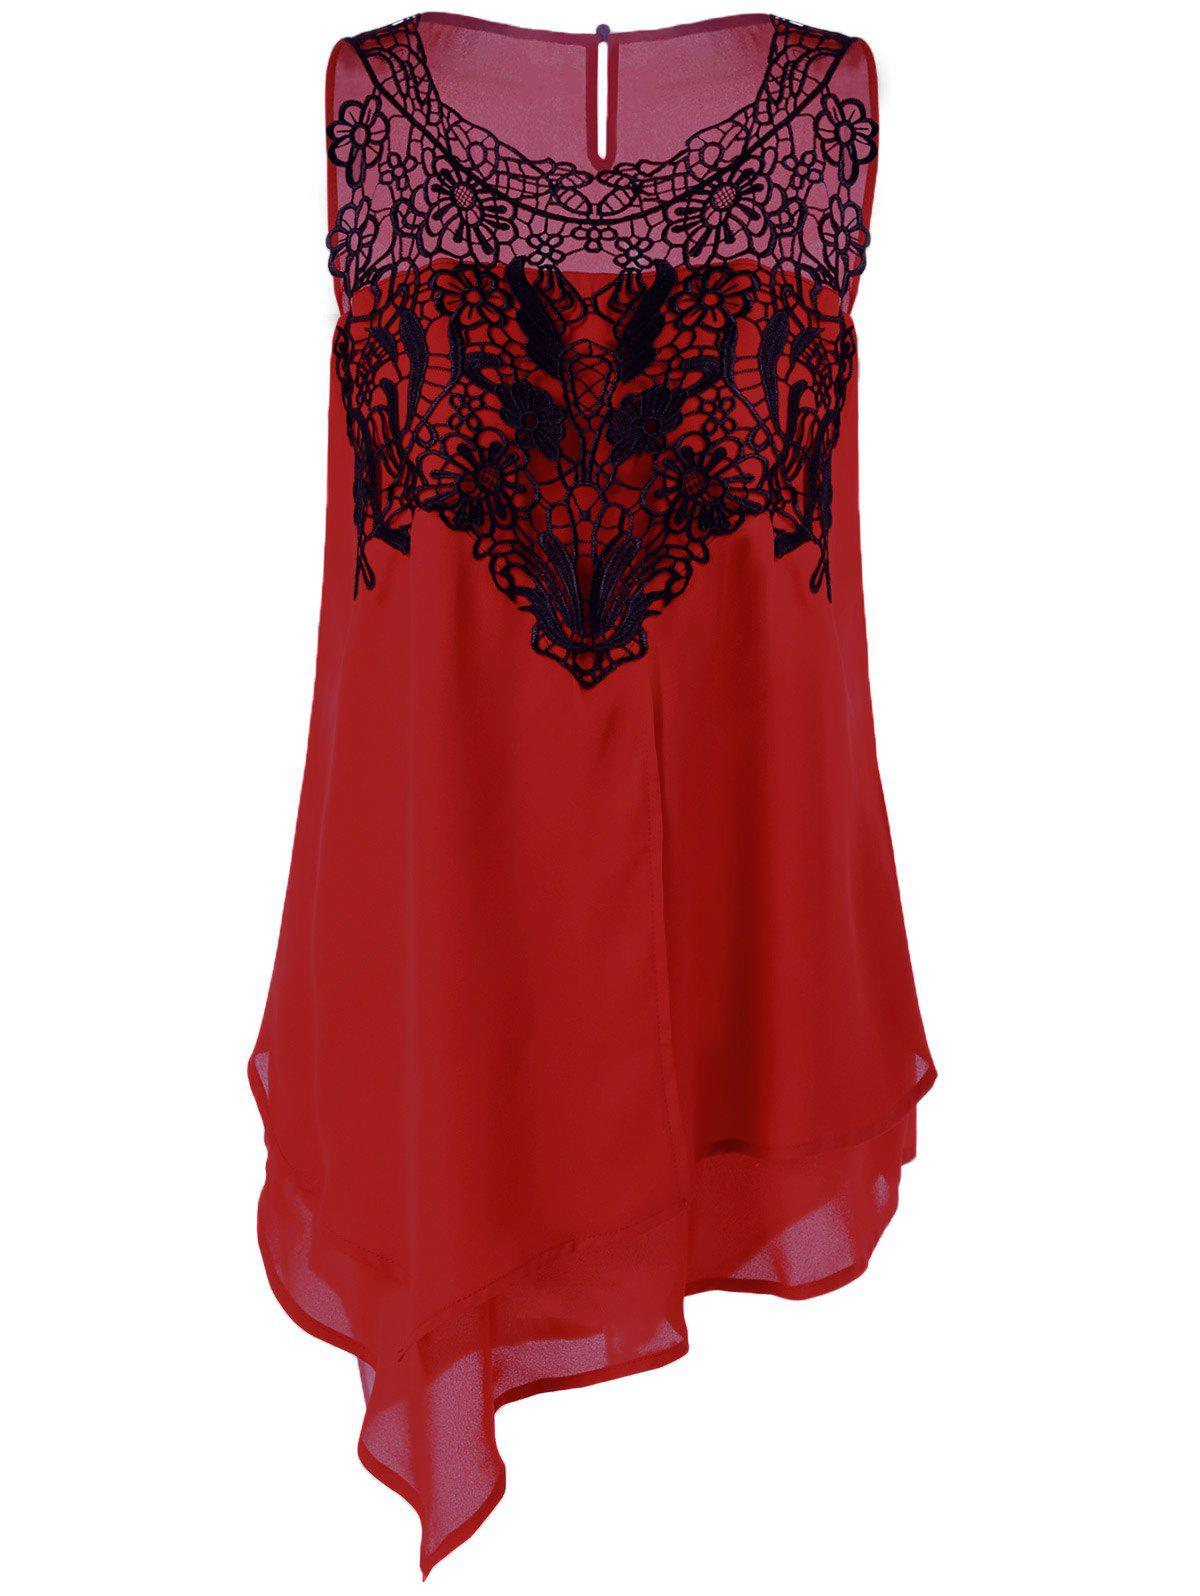 Plus Size Lace Trim Layered Asymmetrical BlouseWOMEN<br><br>Size: 5XL; Color: RED WITH BLACK; Material: Polyester; Shirt Length: Long; Sleeve Length: Sleeveless; Collar: Round Neck; Style: Fashion; Season: Summer; Pattern Type: Floral; Weight: 0.3200kg; Package Contents: 1 x Blouse;